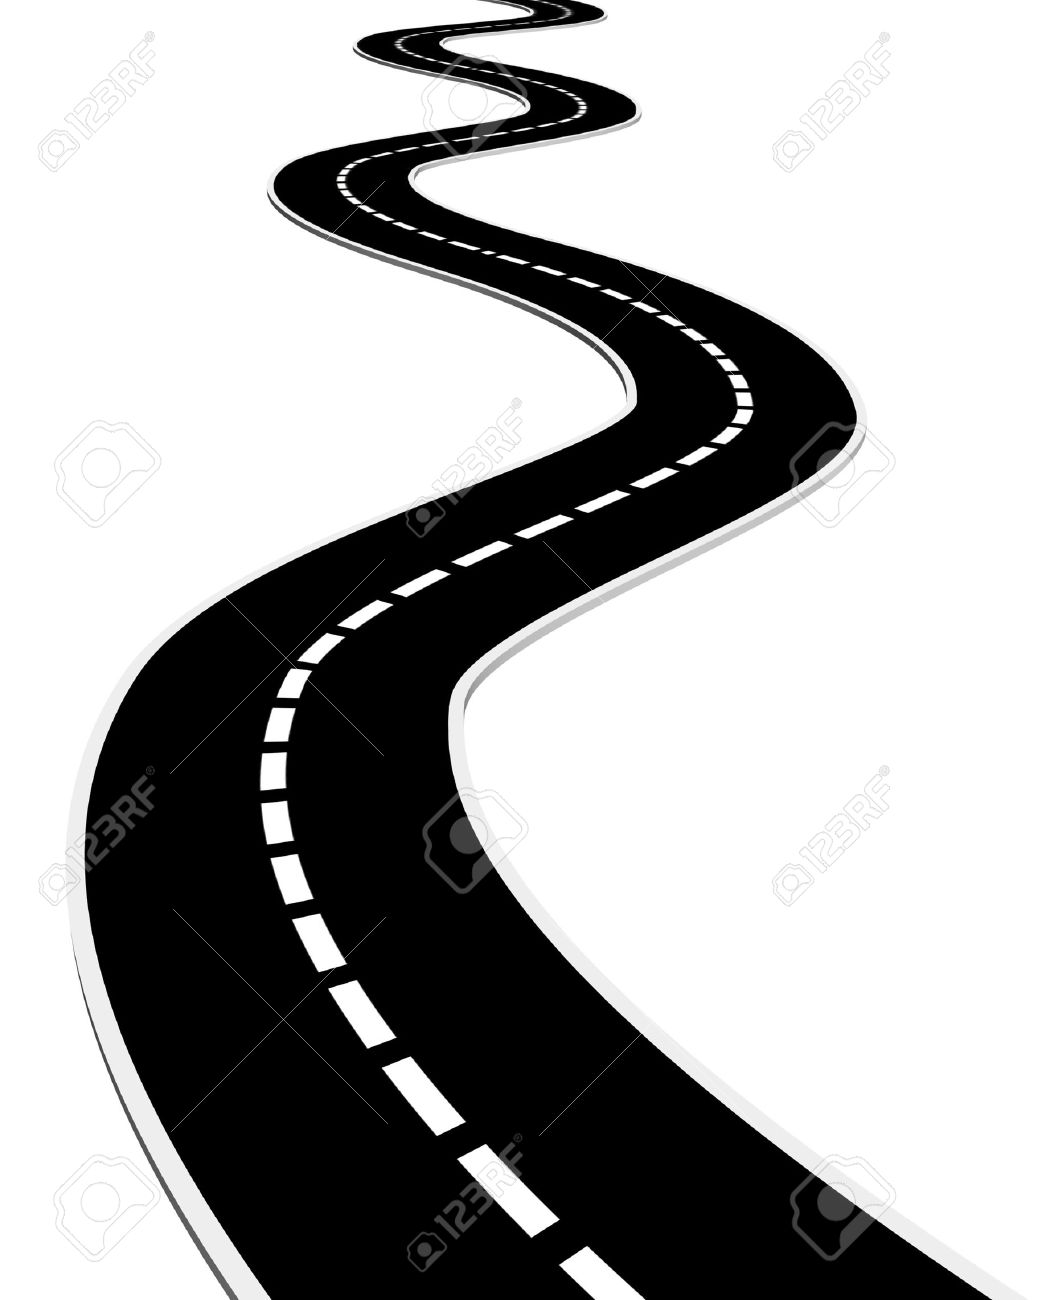 Road clipart #1, Download drawings